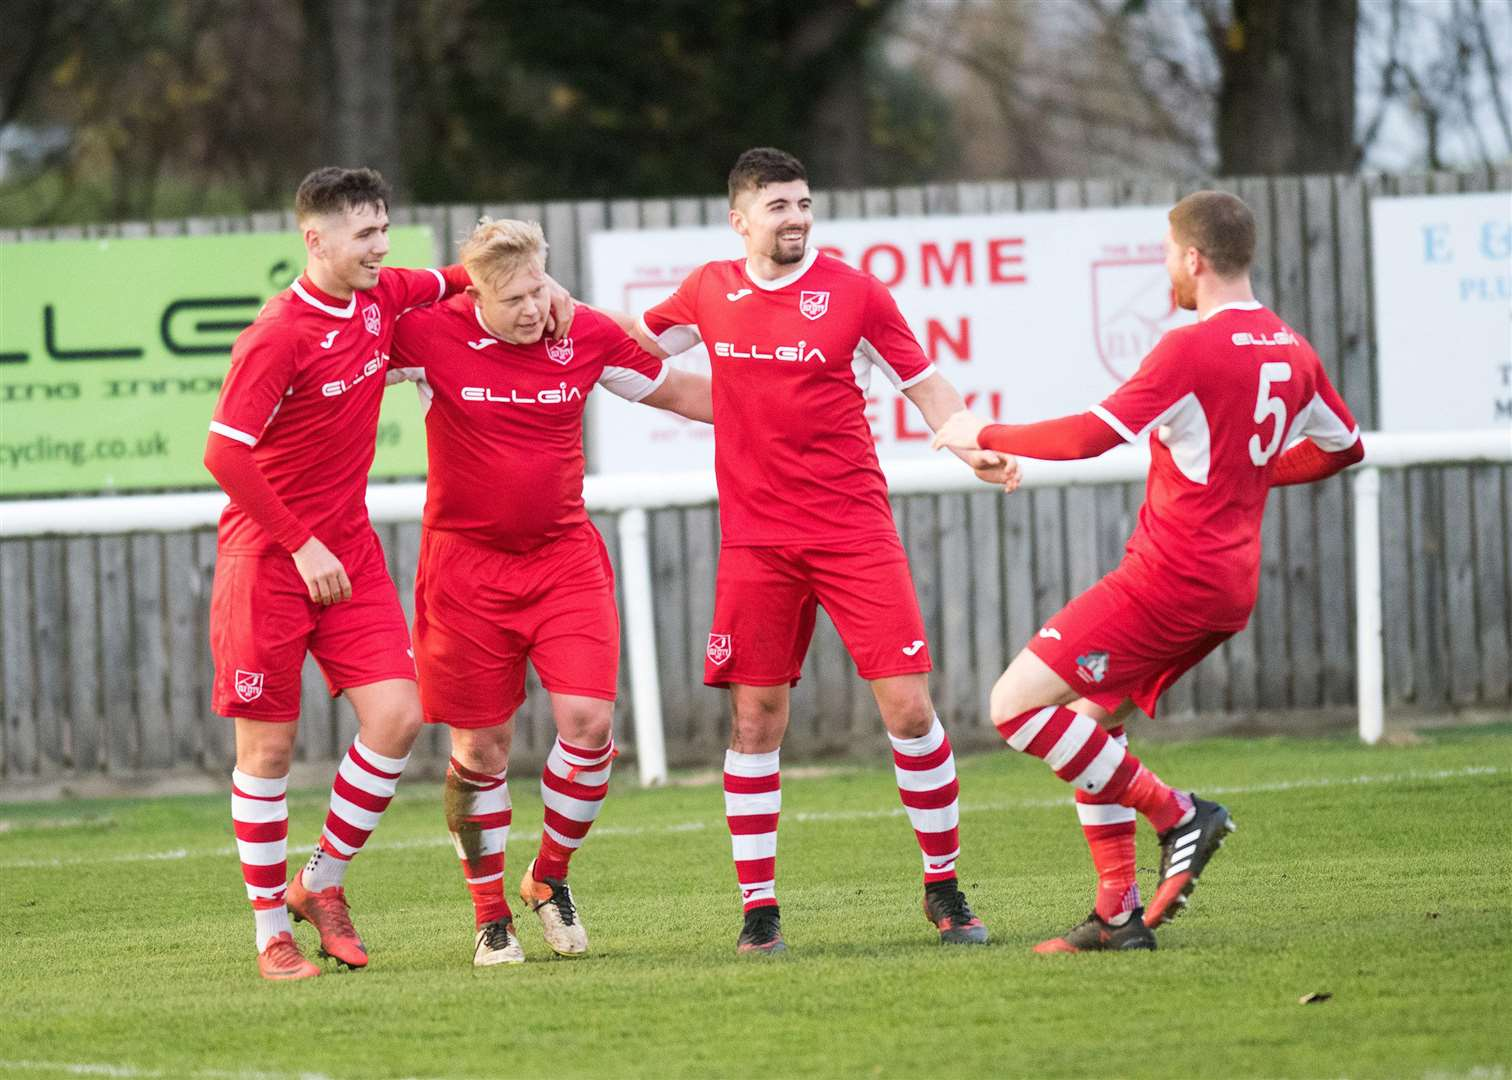 CELEBRATION TIME: Steve Holder celebrates with his new team-mates